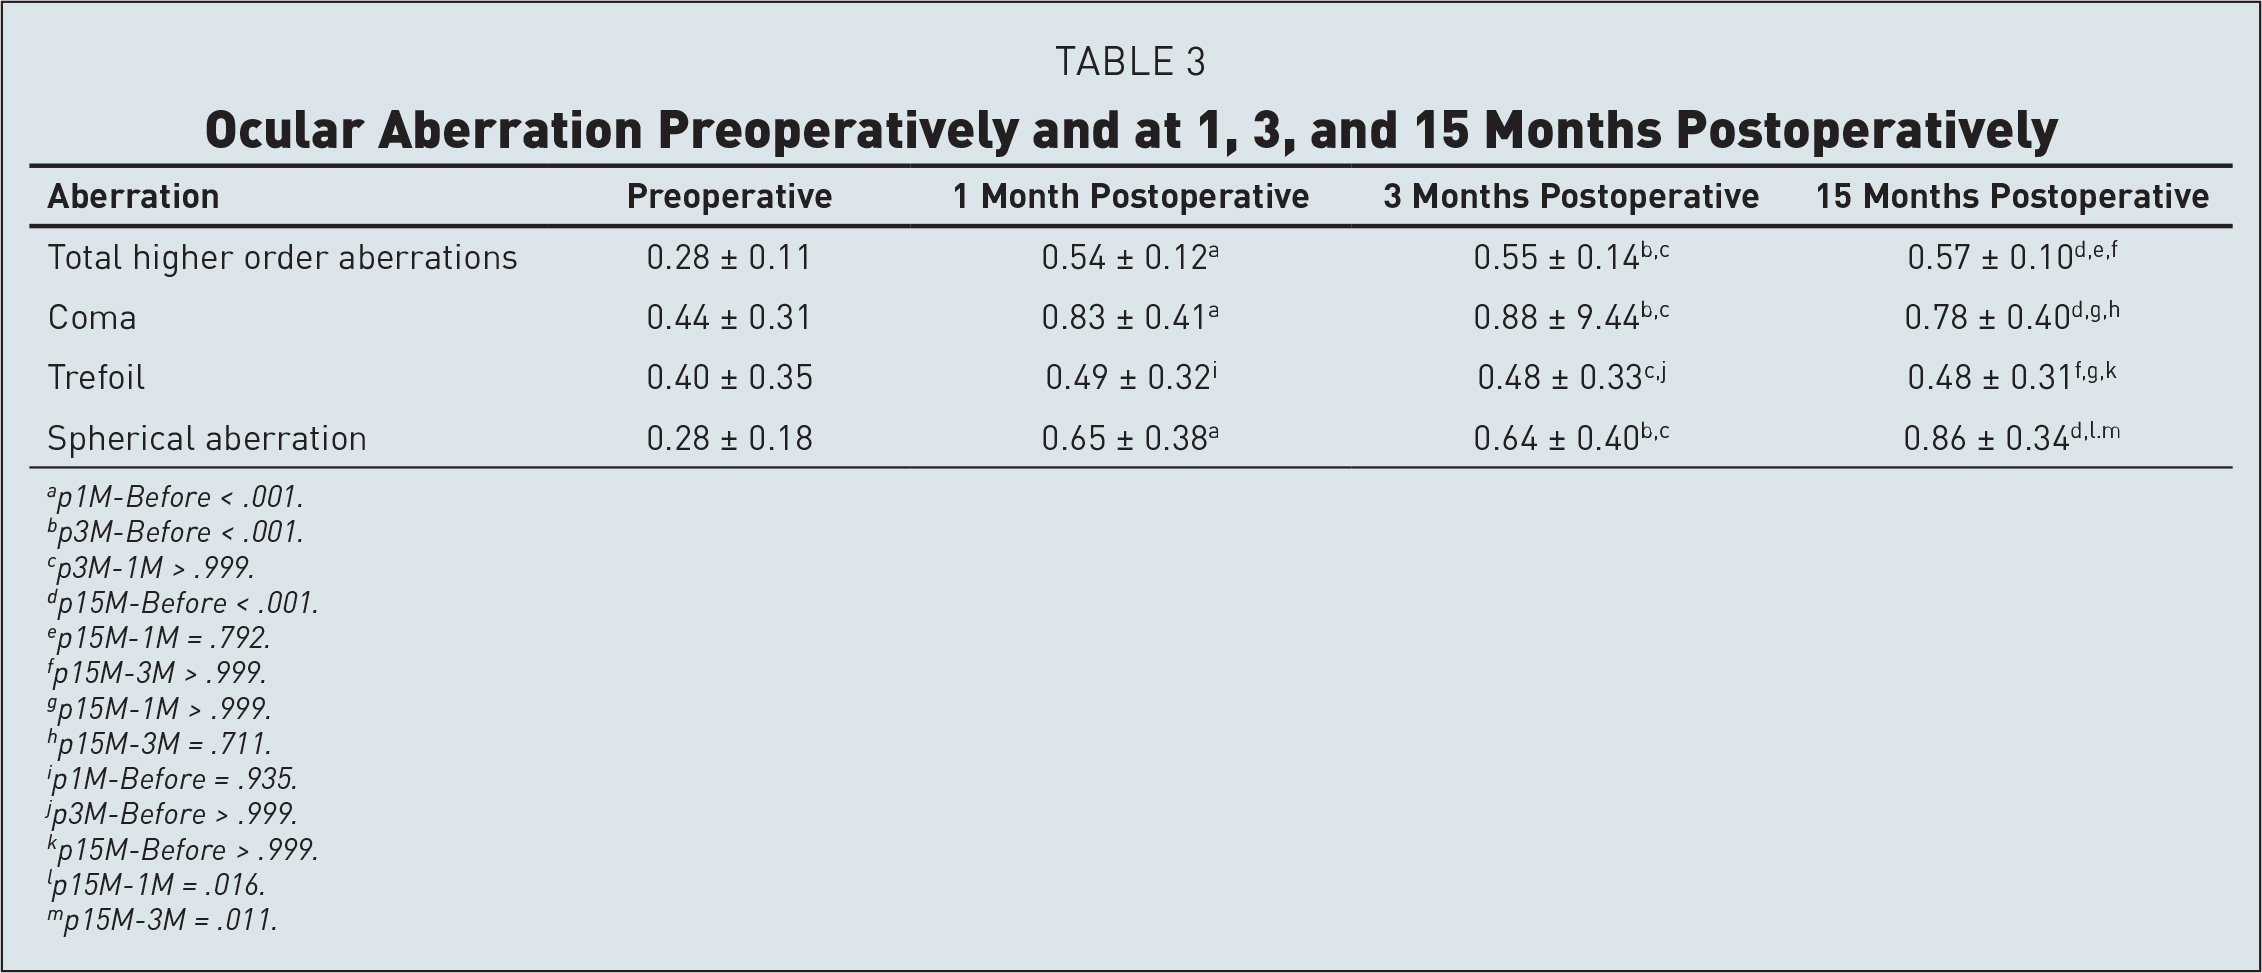 Ocular Aberration Preoperatively and at 1, 3, and 15 Months Postoperatively